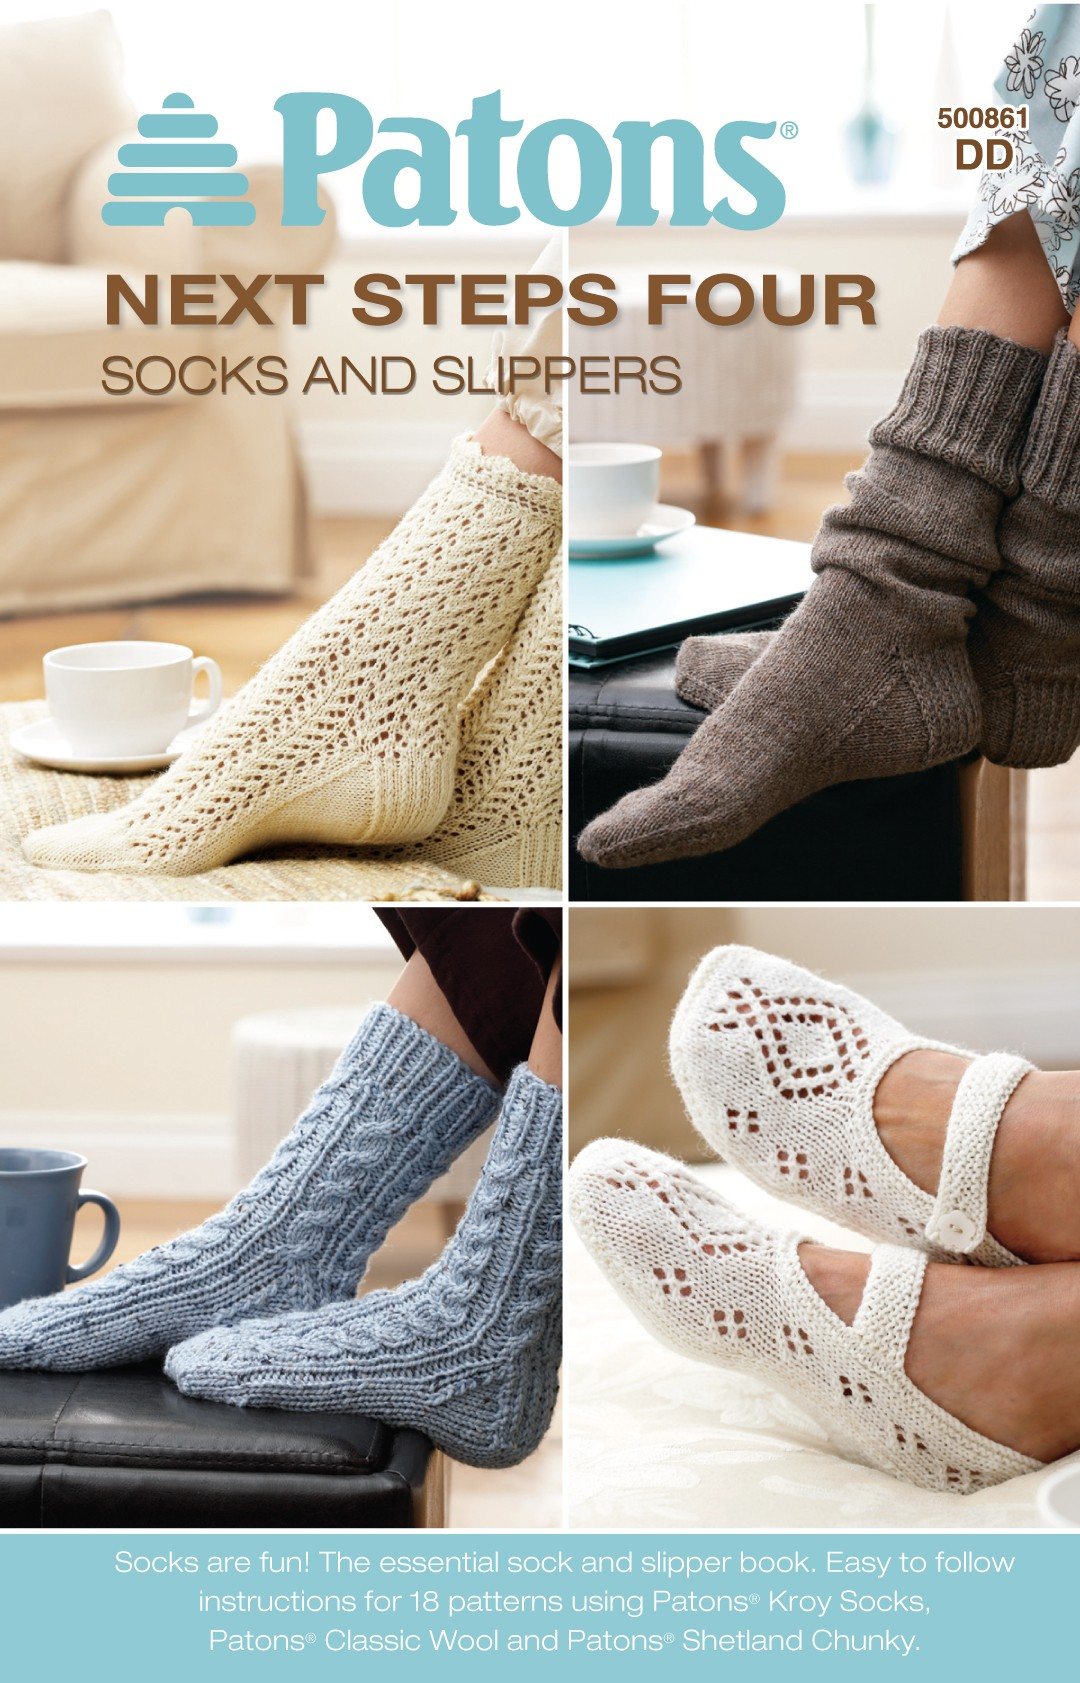 Next Steps Four - Socks and Slippers